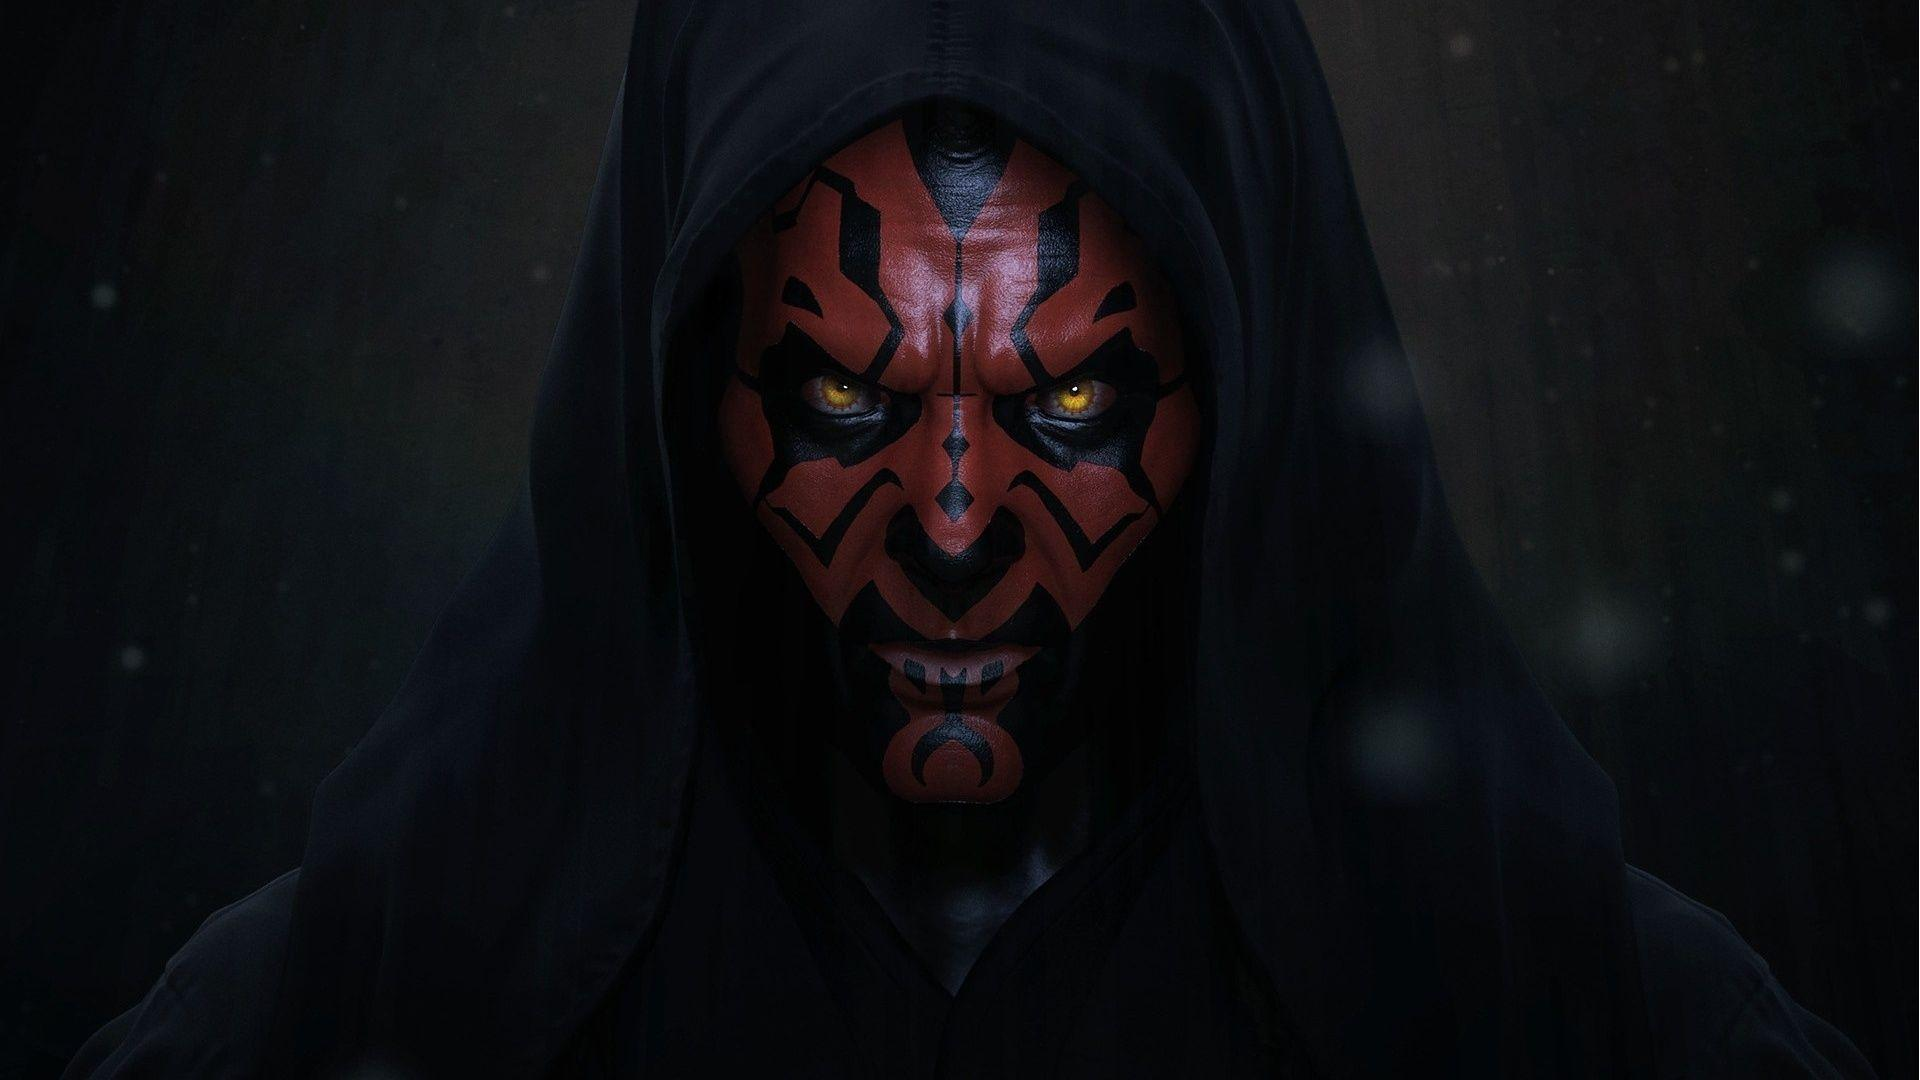 Sith Lord Wallpapers Hd Wallpaper Cave